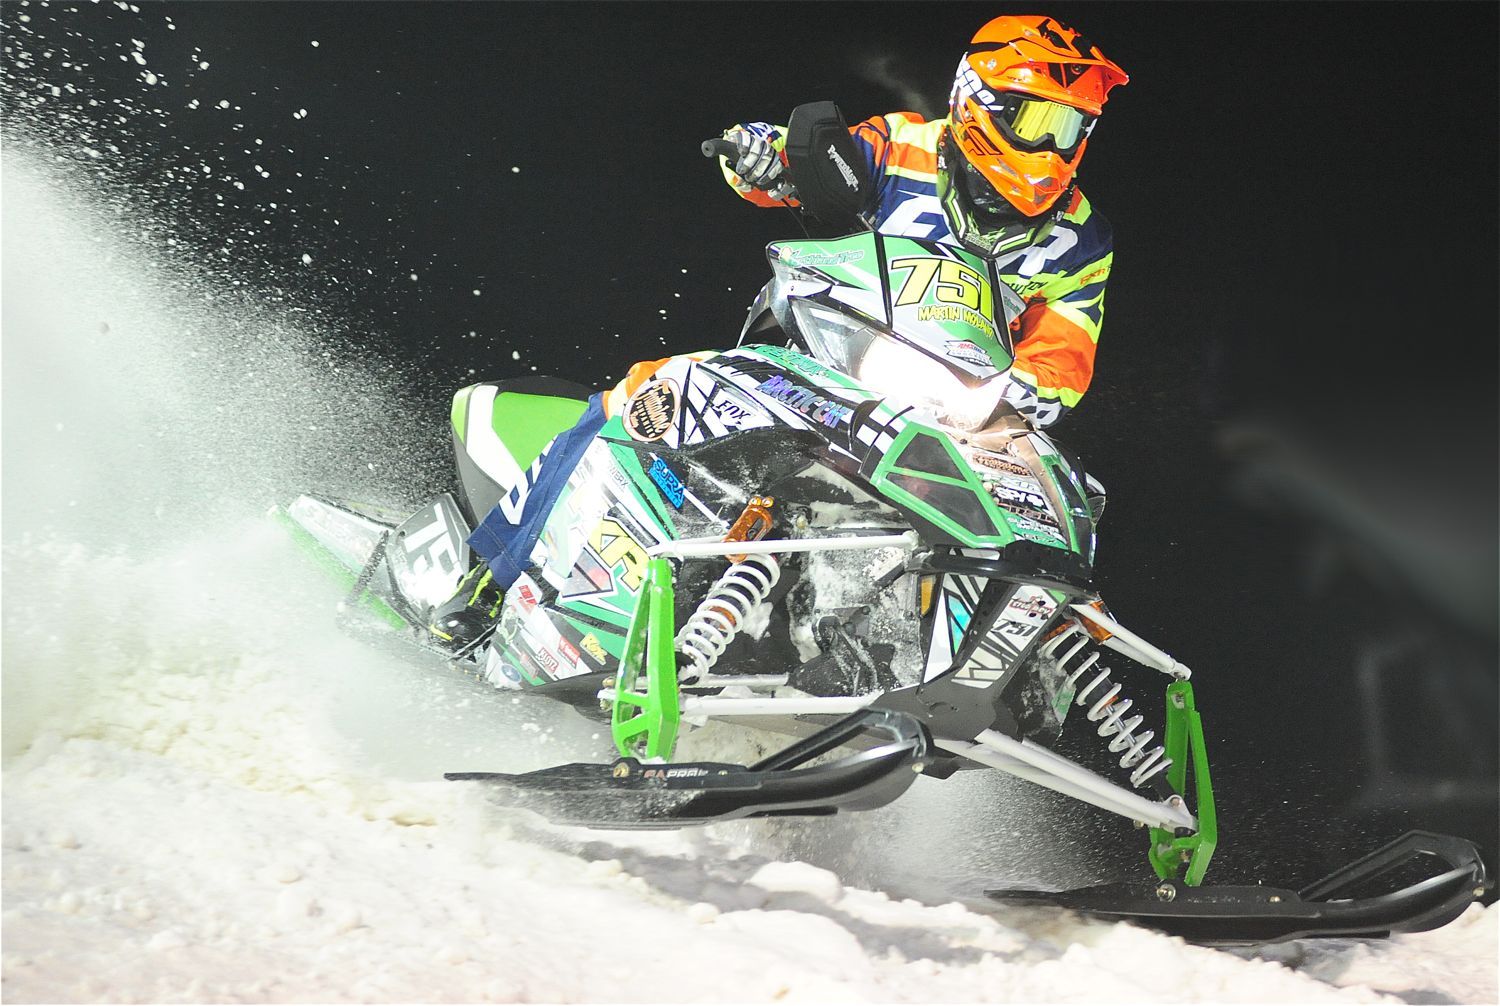 Team Arctic Cat's Martin Moland. Photo by ArcticInsider.com